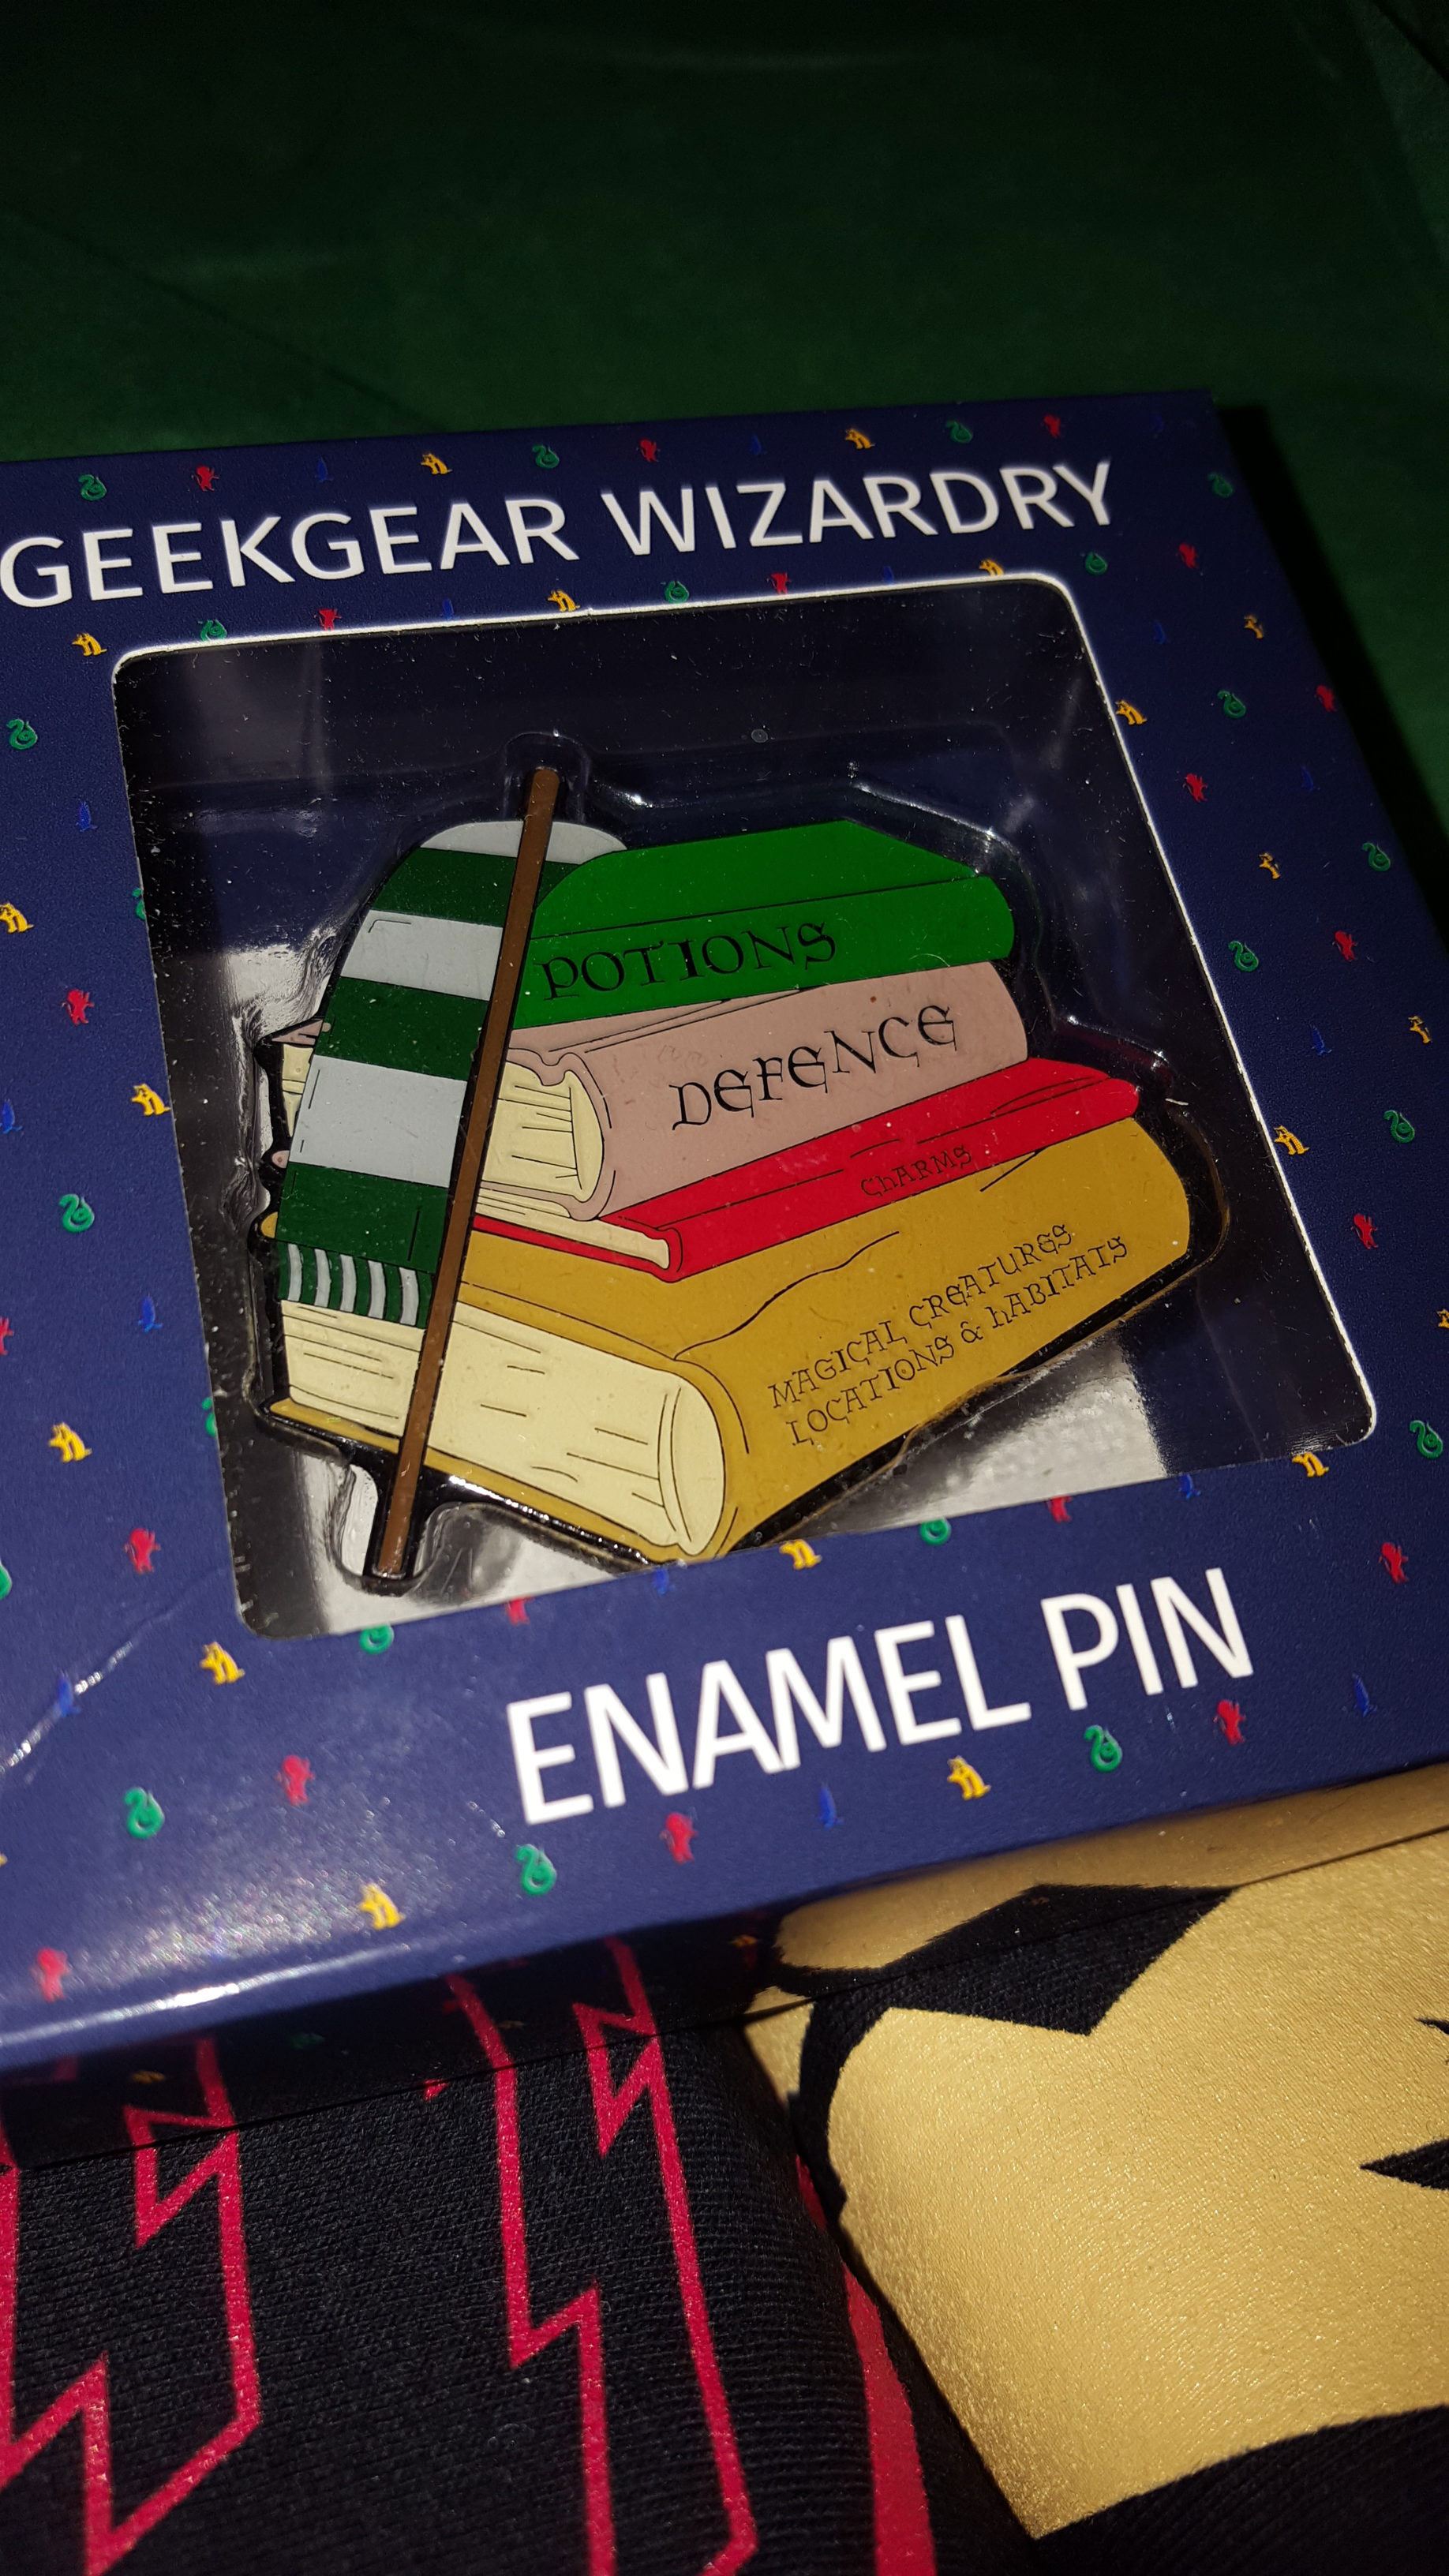 """Slytherin enamal pin featuring Slytherin scarf, wand, and stack of """"Potions"""", """"Defence"""", """"Charms"""", and """"Magical Creatures, Locations, & Habitats"""" books"""